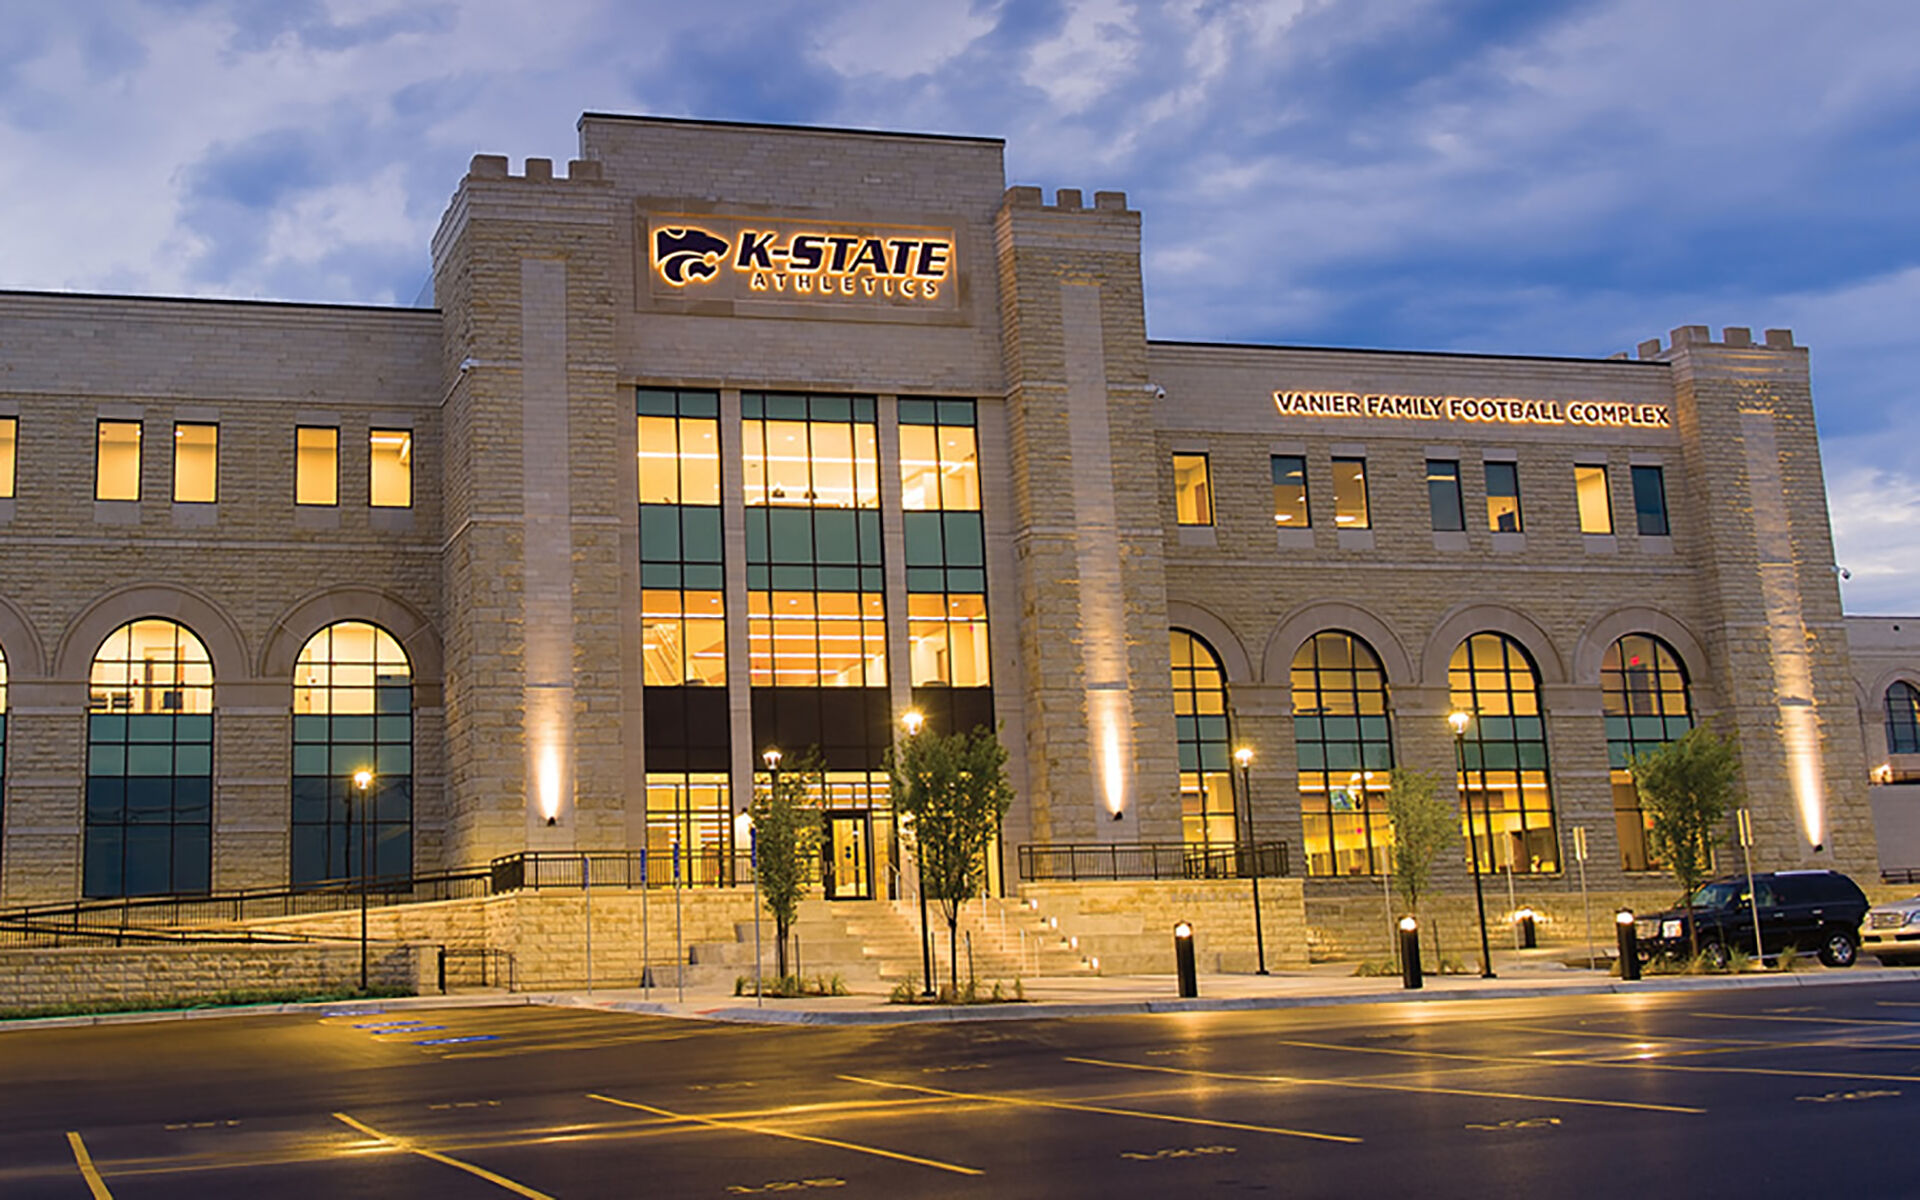 Vanier Family Football Complex & Bill Snyder Family Football Stadium North End Zone - Kansas State University